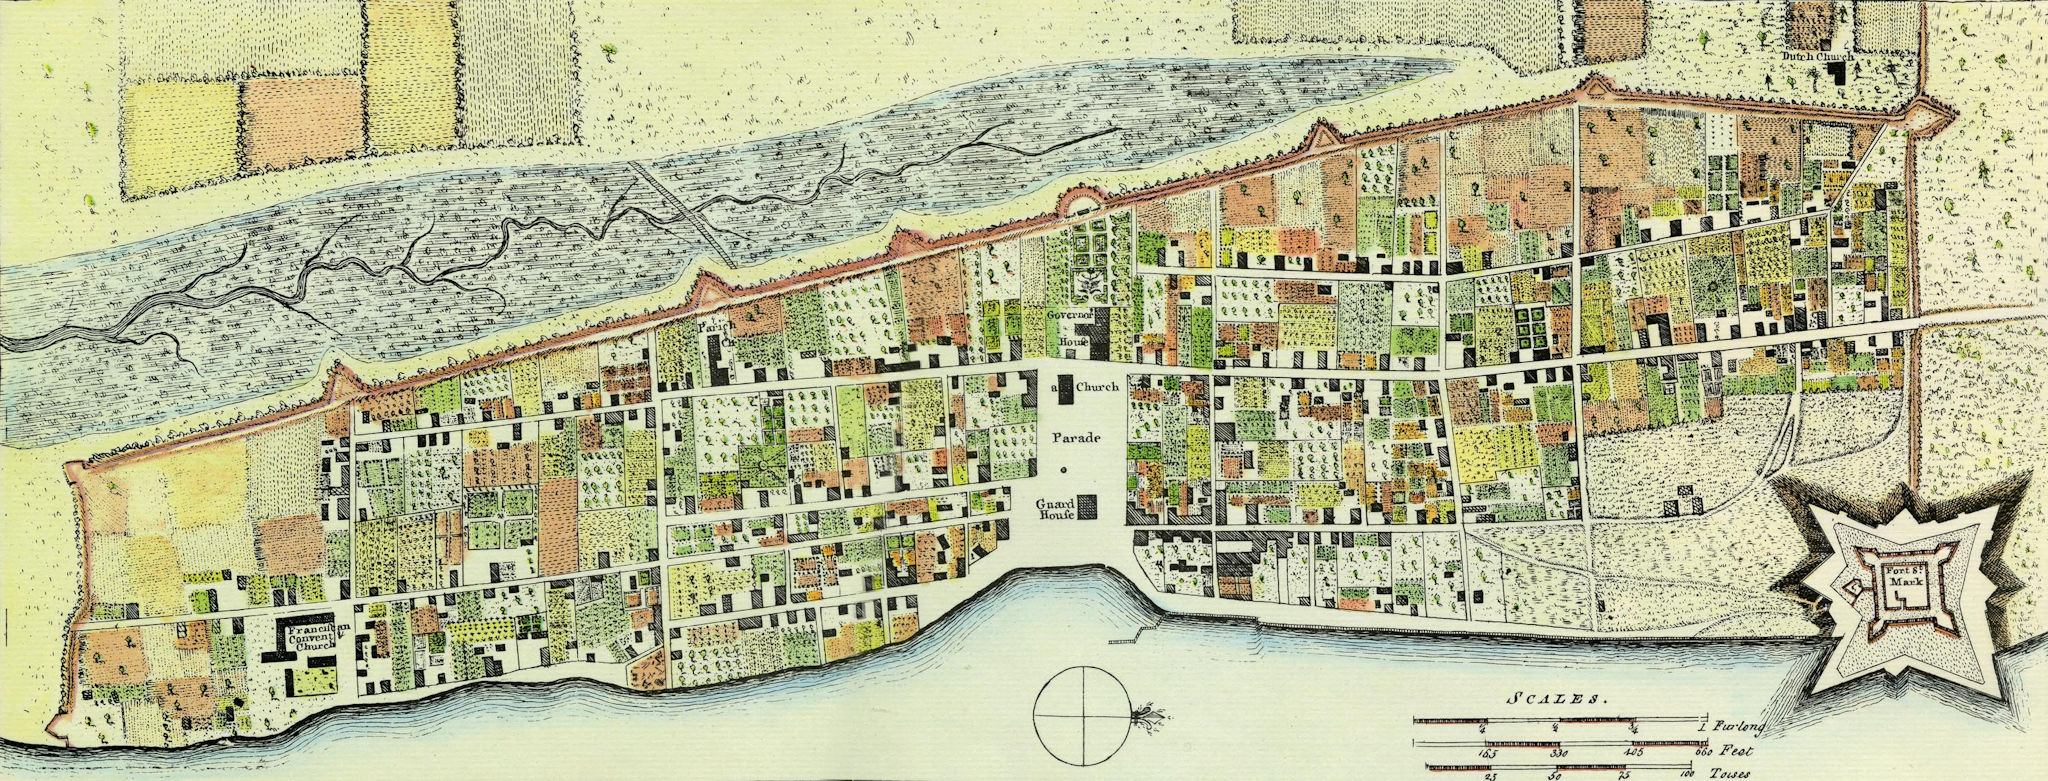 st augustine historical map 1764